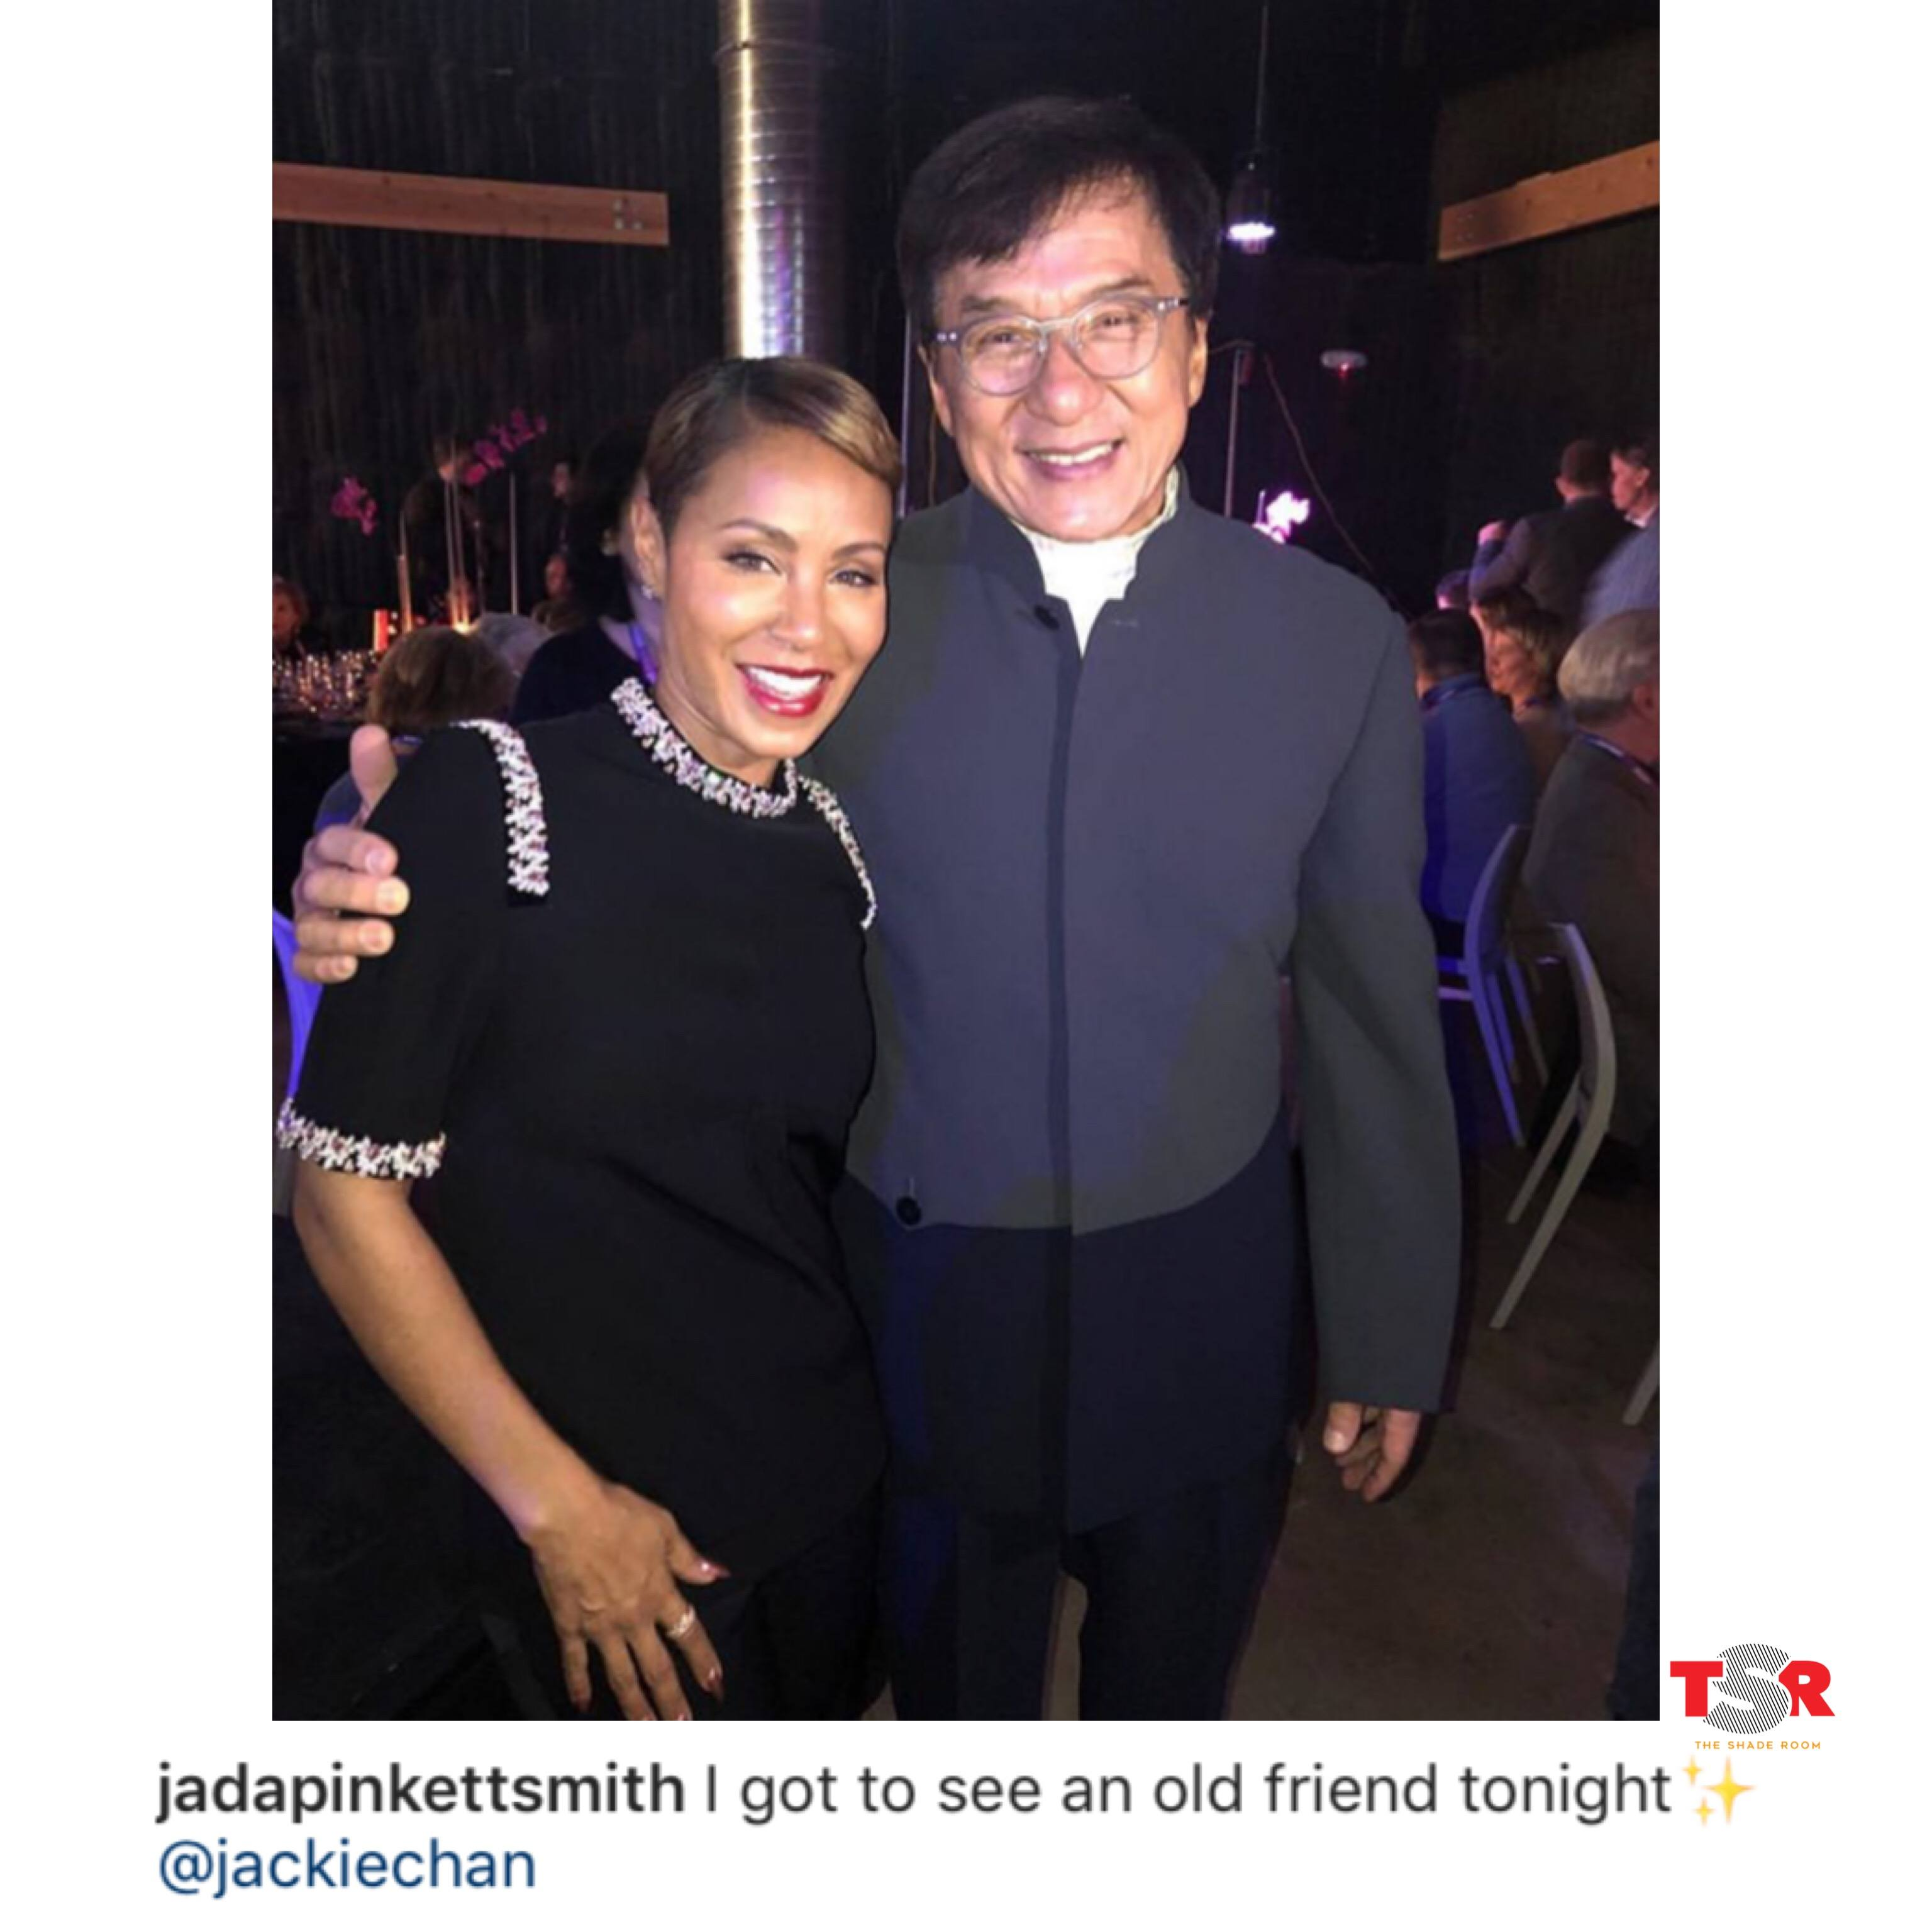 Jada Pinkett Smith & Jackie Chan Pose For A Photo